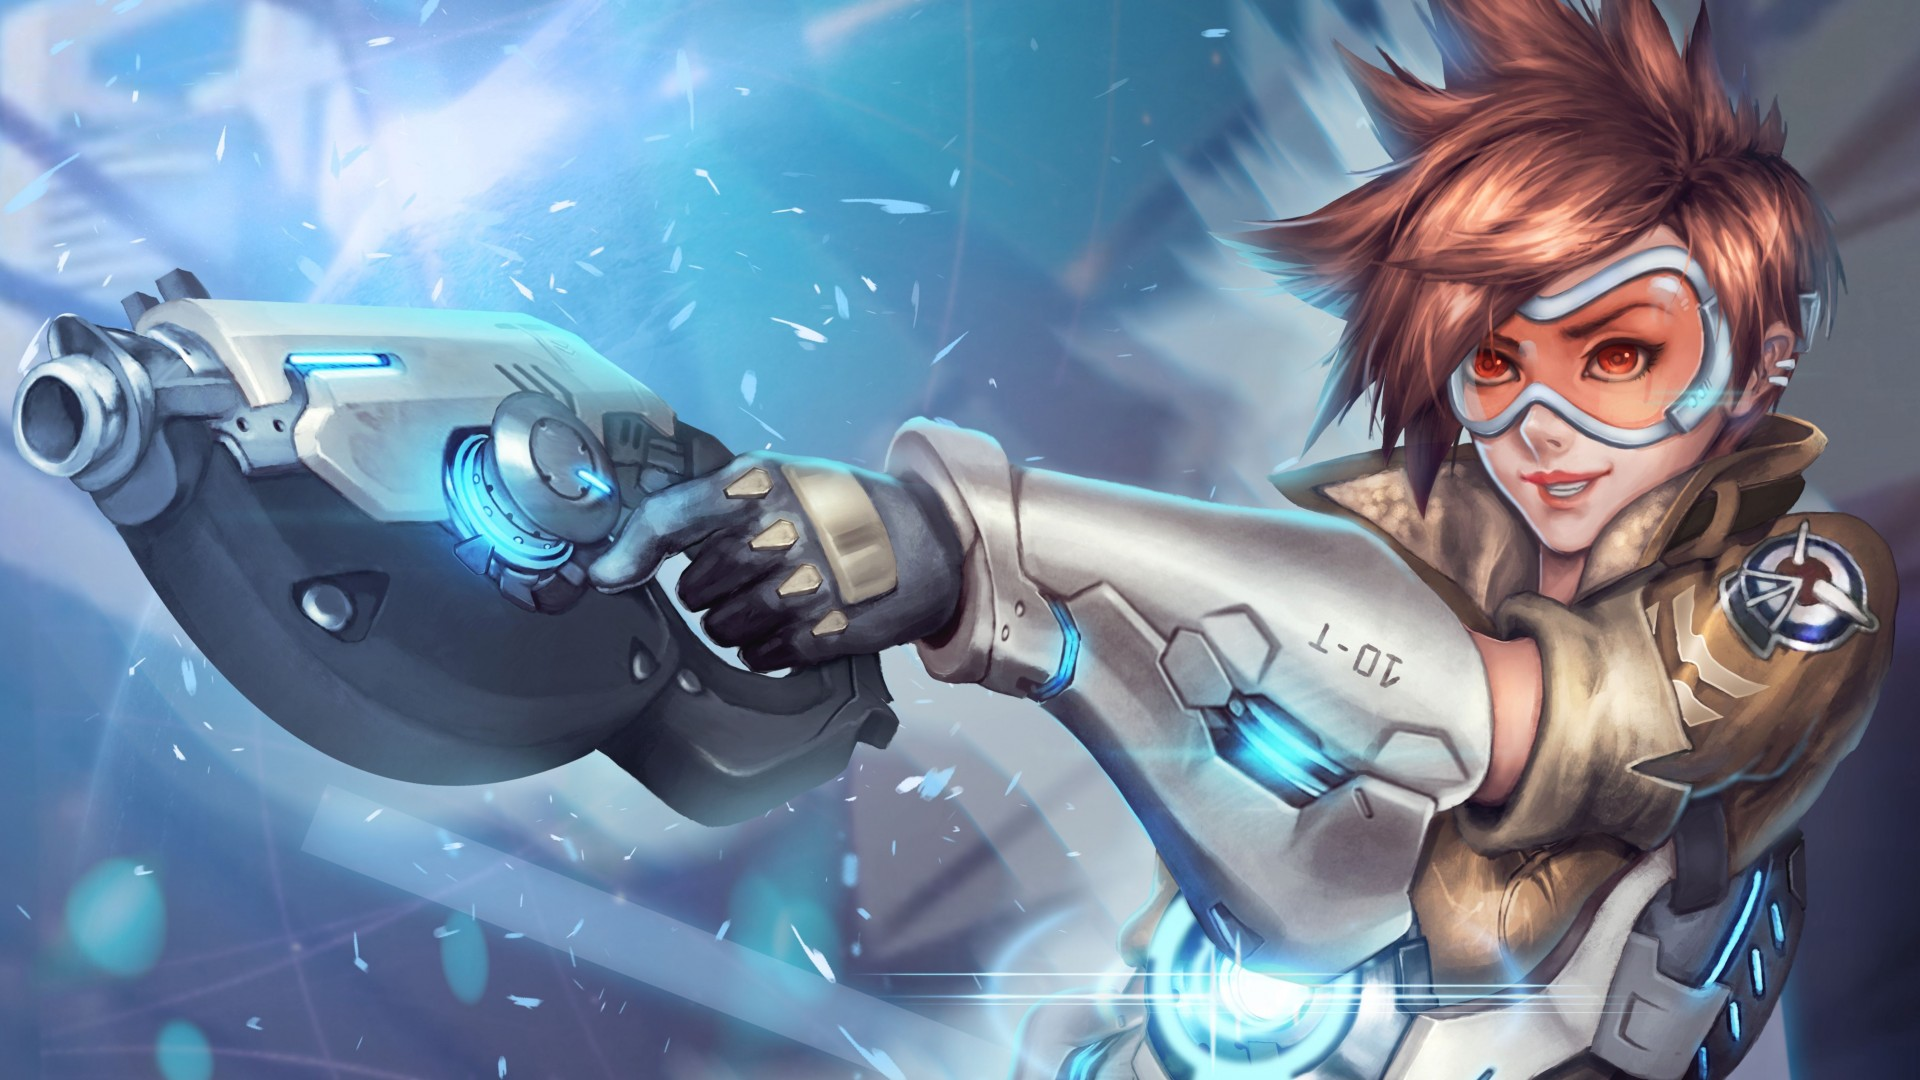 Tracer Overwatch HD Wallpaper